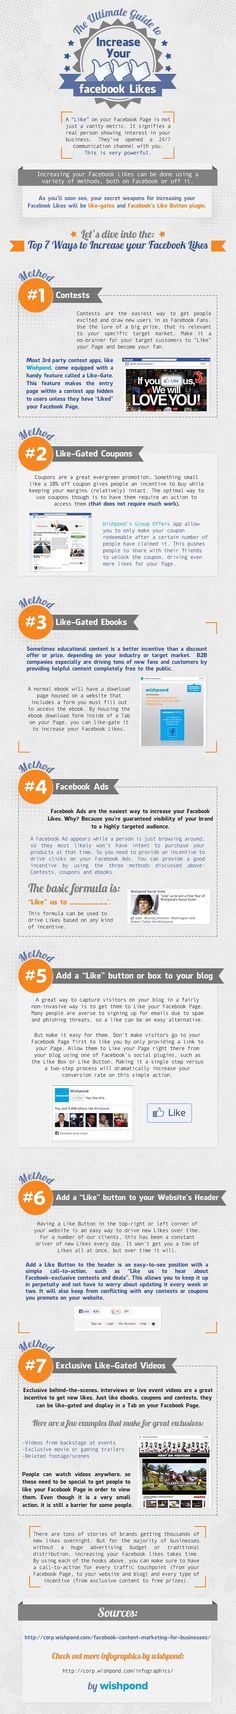 How to Get More Facebook Likes [infographic] --> http://louisem.com/3607/how-to-get-more-facebook-likes